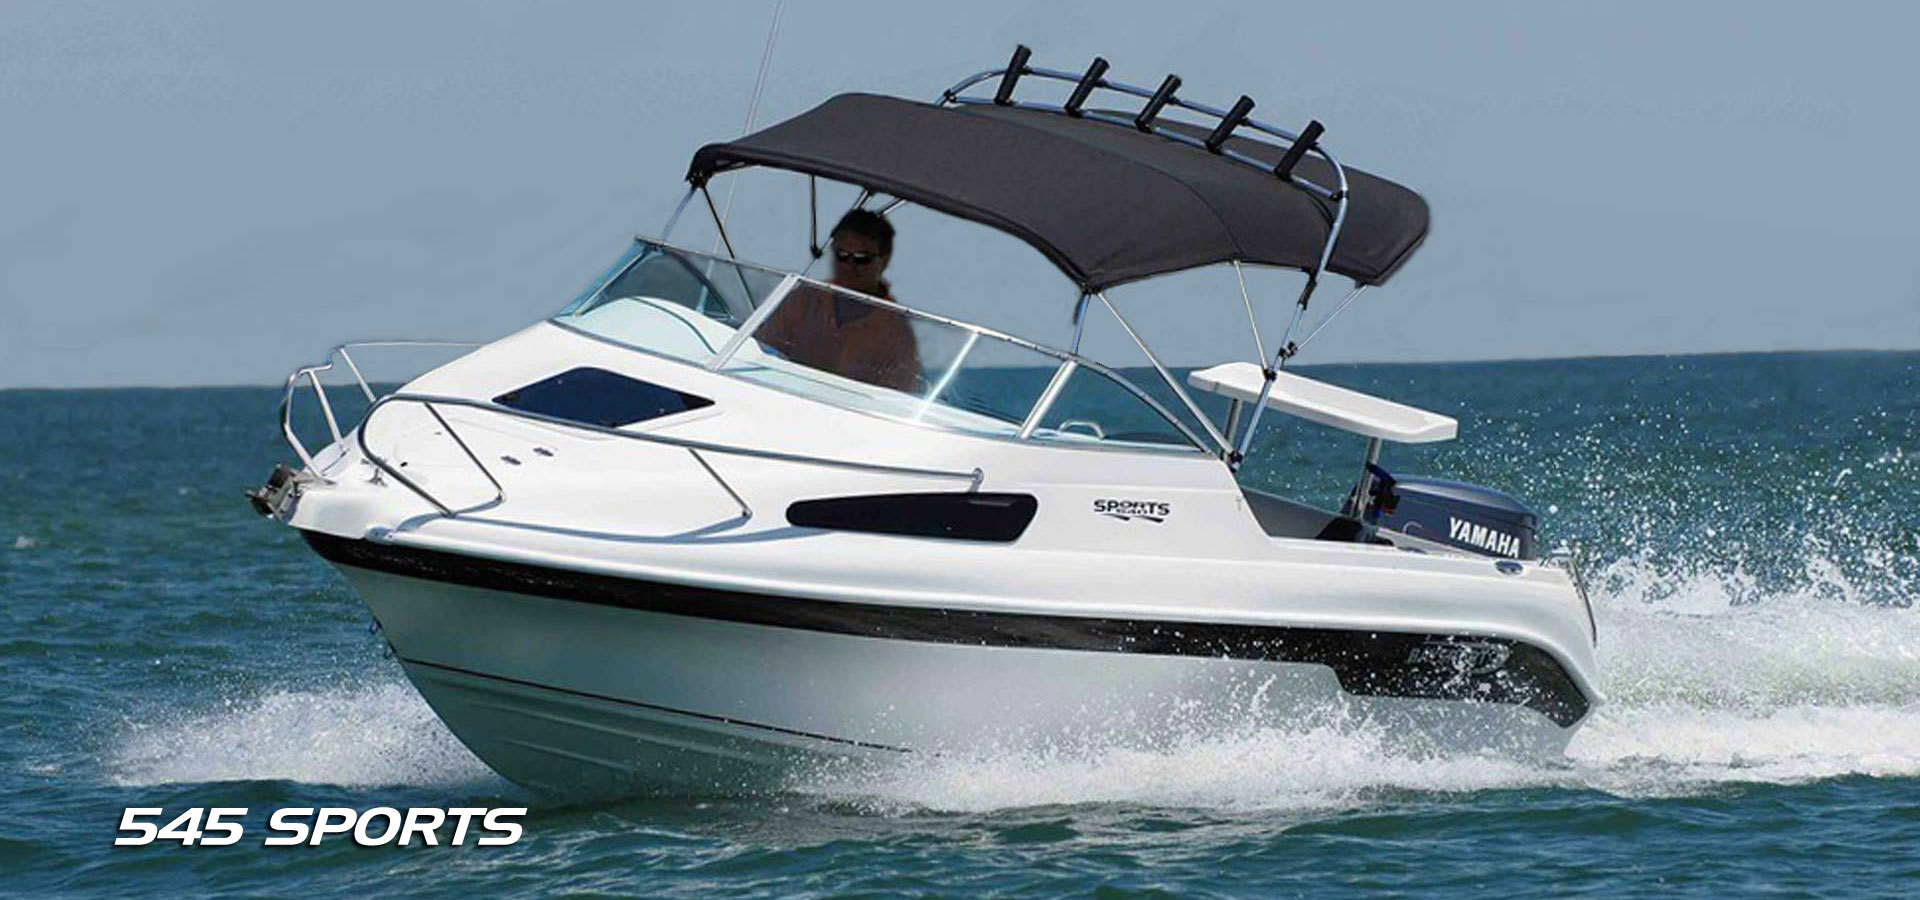 Baysport Boats 545 Sports fibreglass boats